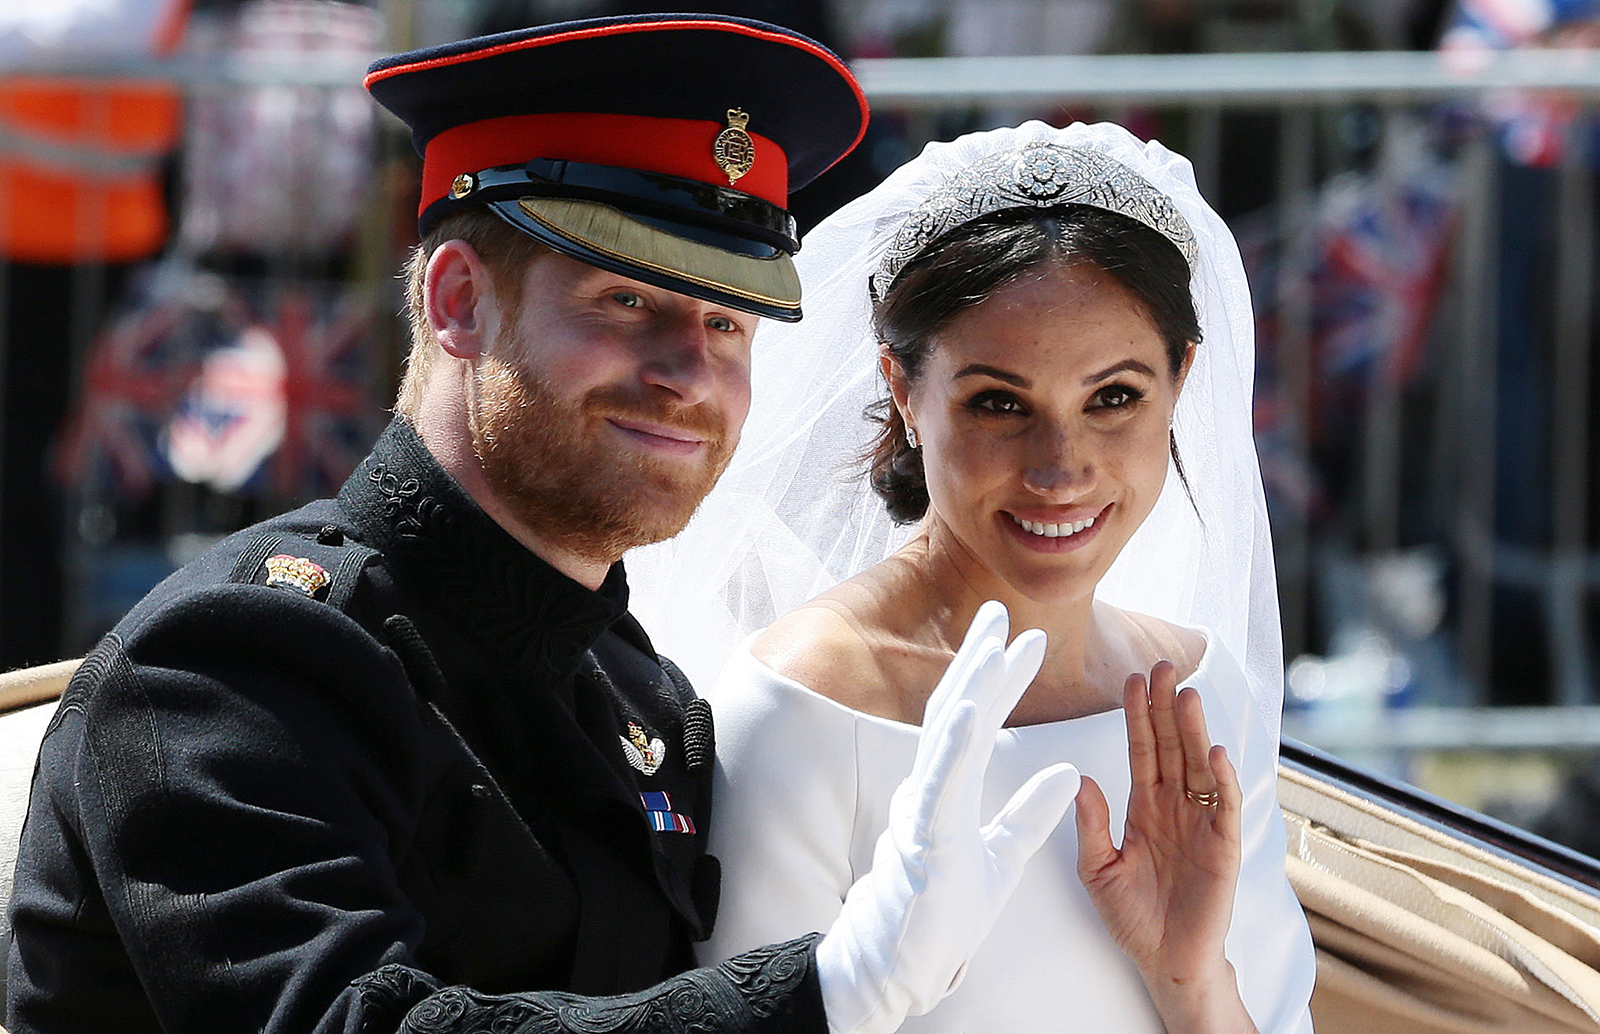 Britain's Prince Harry, Duke of Sussex and his wife Meghan, Duchess of Sussex wave from the Ascot Landau Carriage during their carriage procession on the Long Walk as they head back towards Windsor Castle in Windsor, on May 19, 2018 after their wedding ceremony.